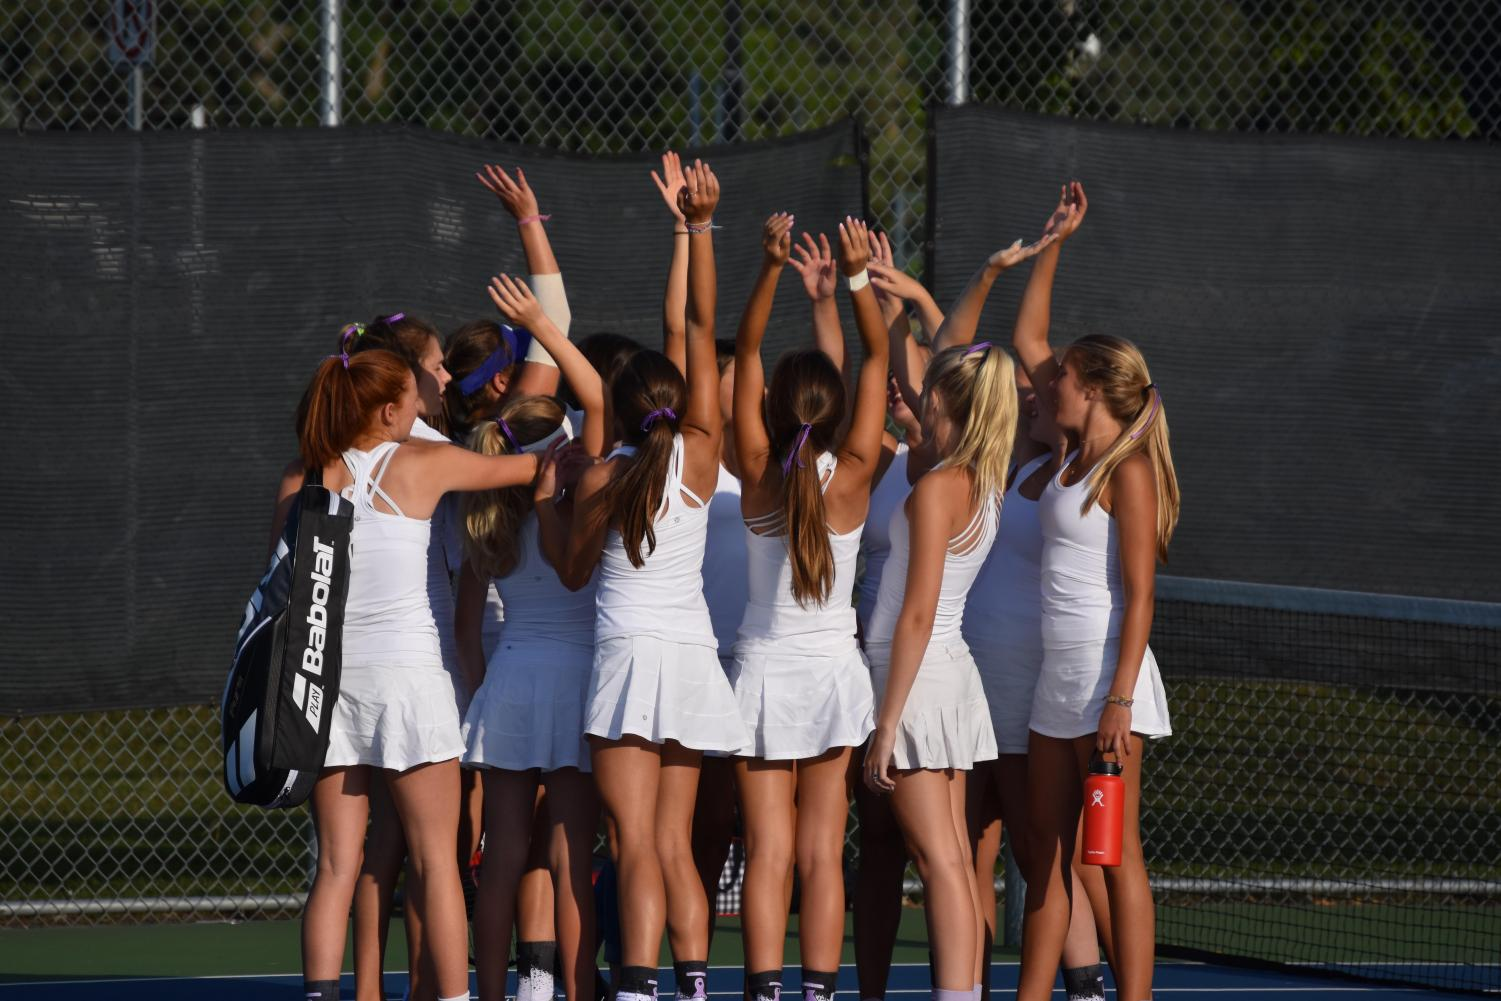 The BSM girls' tennis team celebrates after a win.